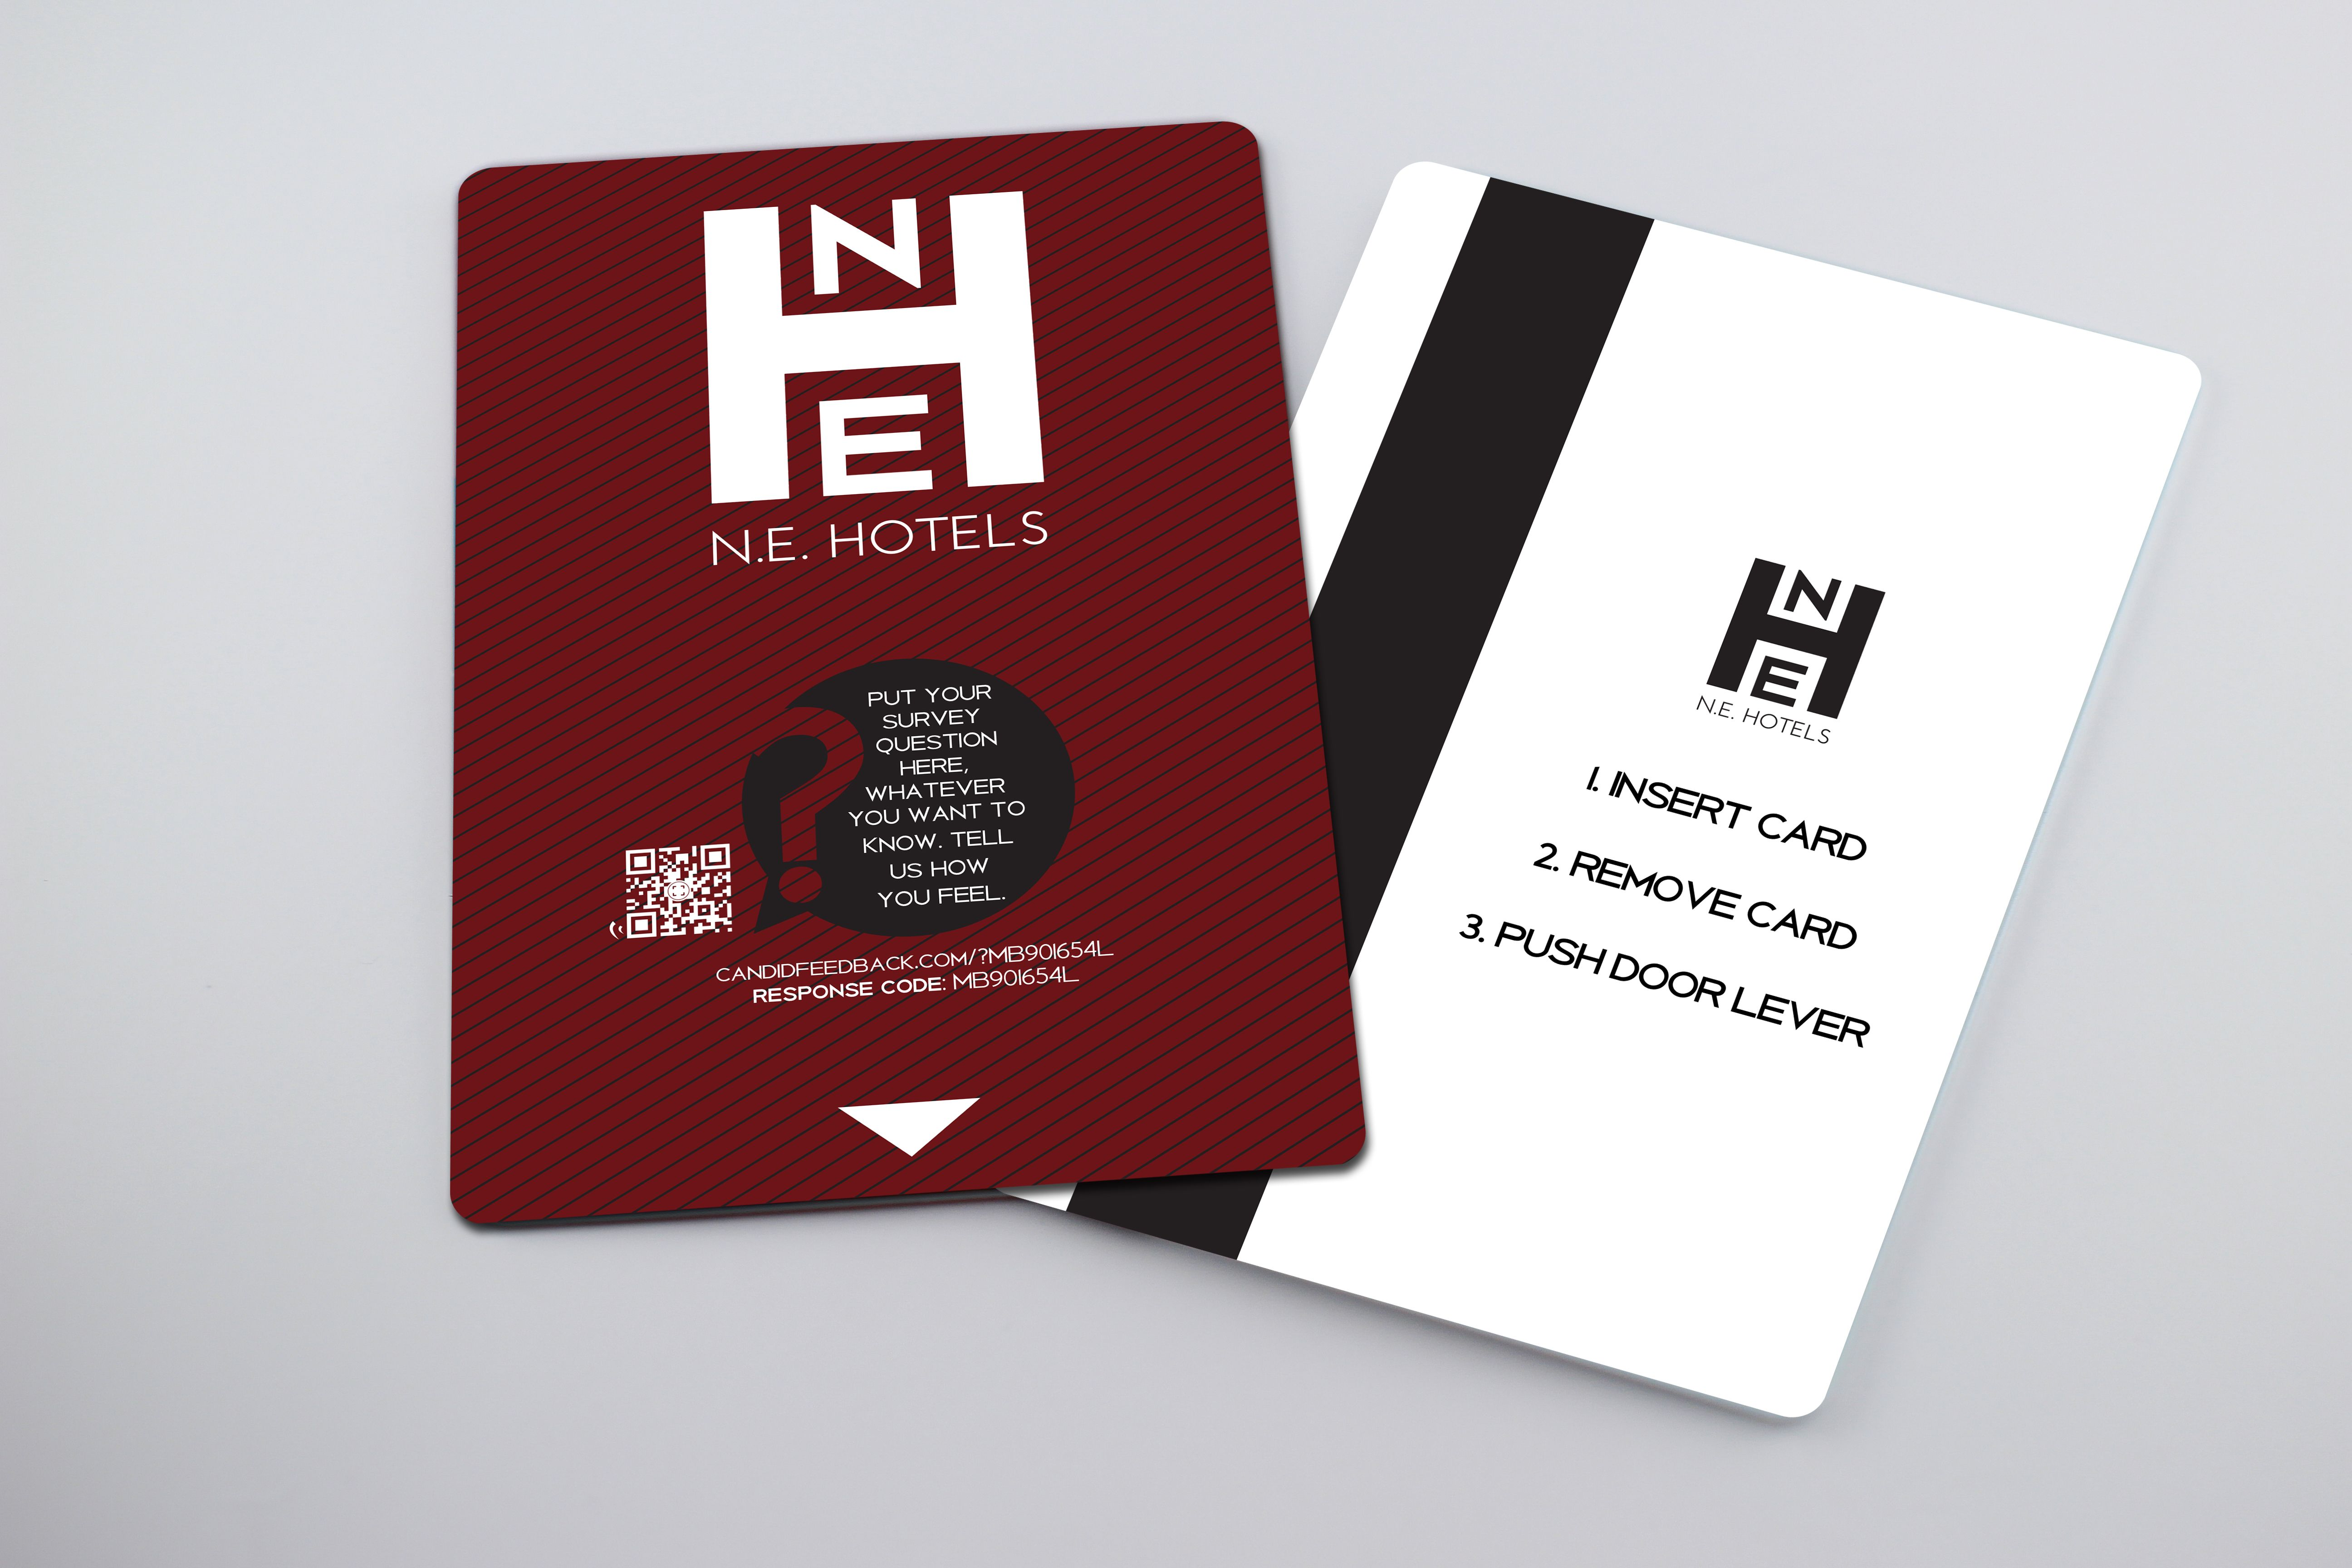 Photorealistic Mobile Feedback Hotel Key Card Design Mockup